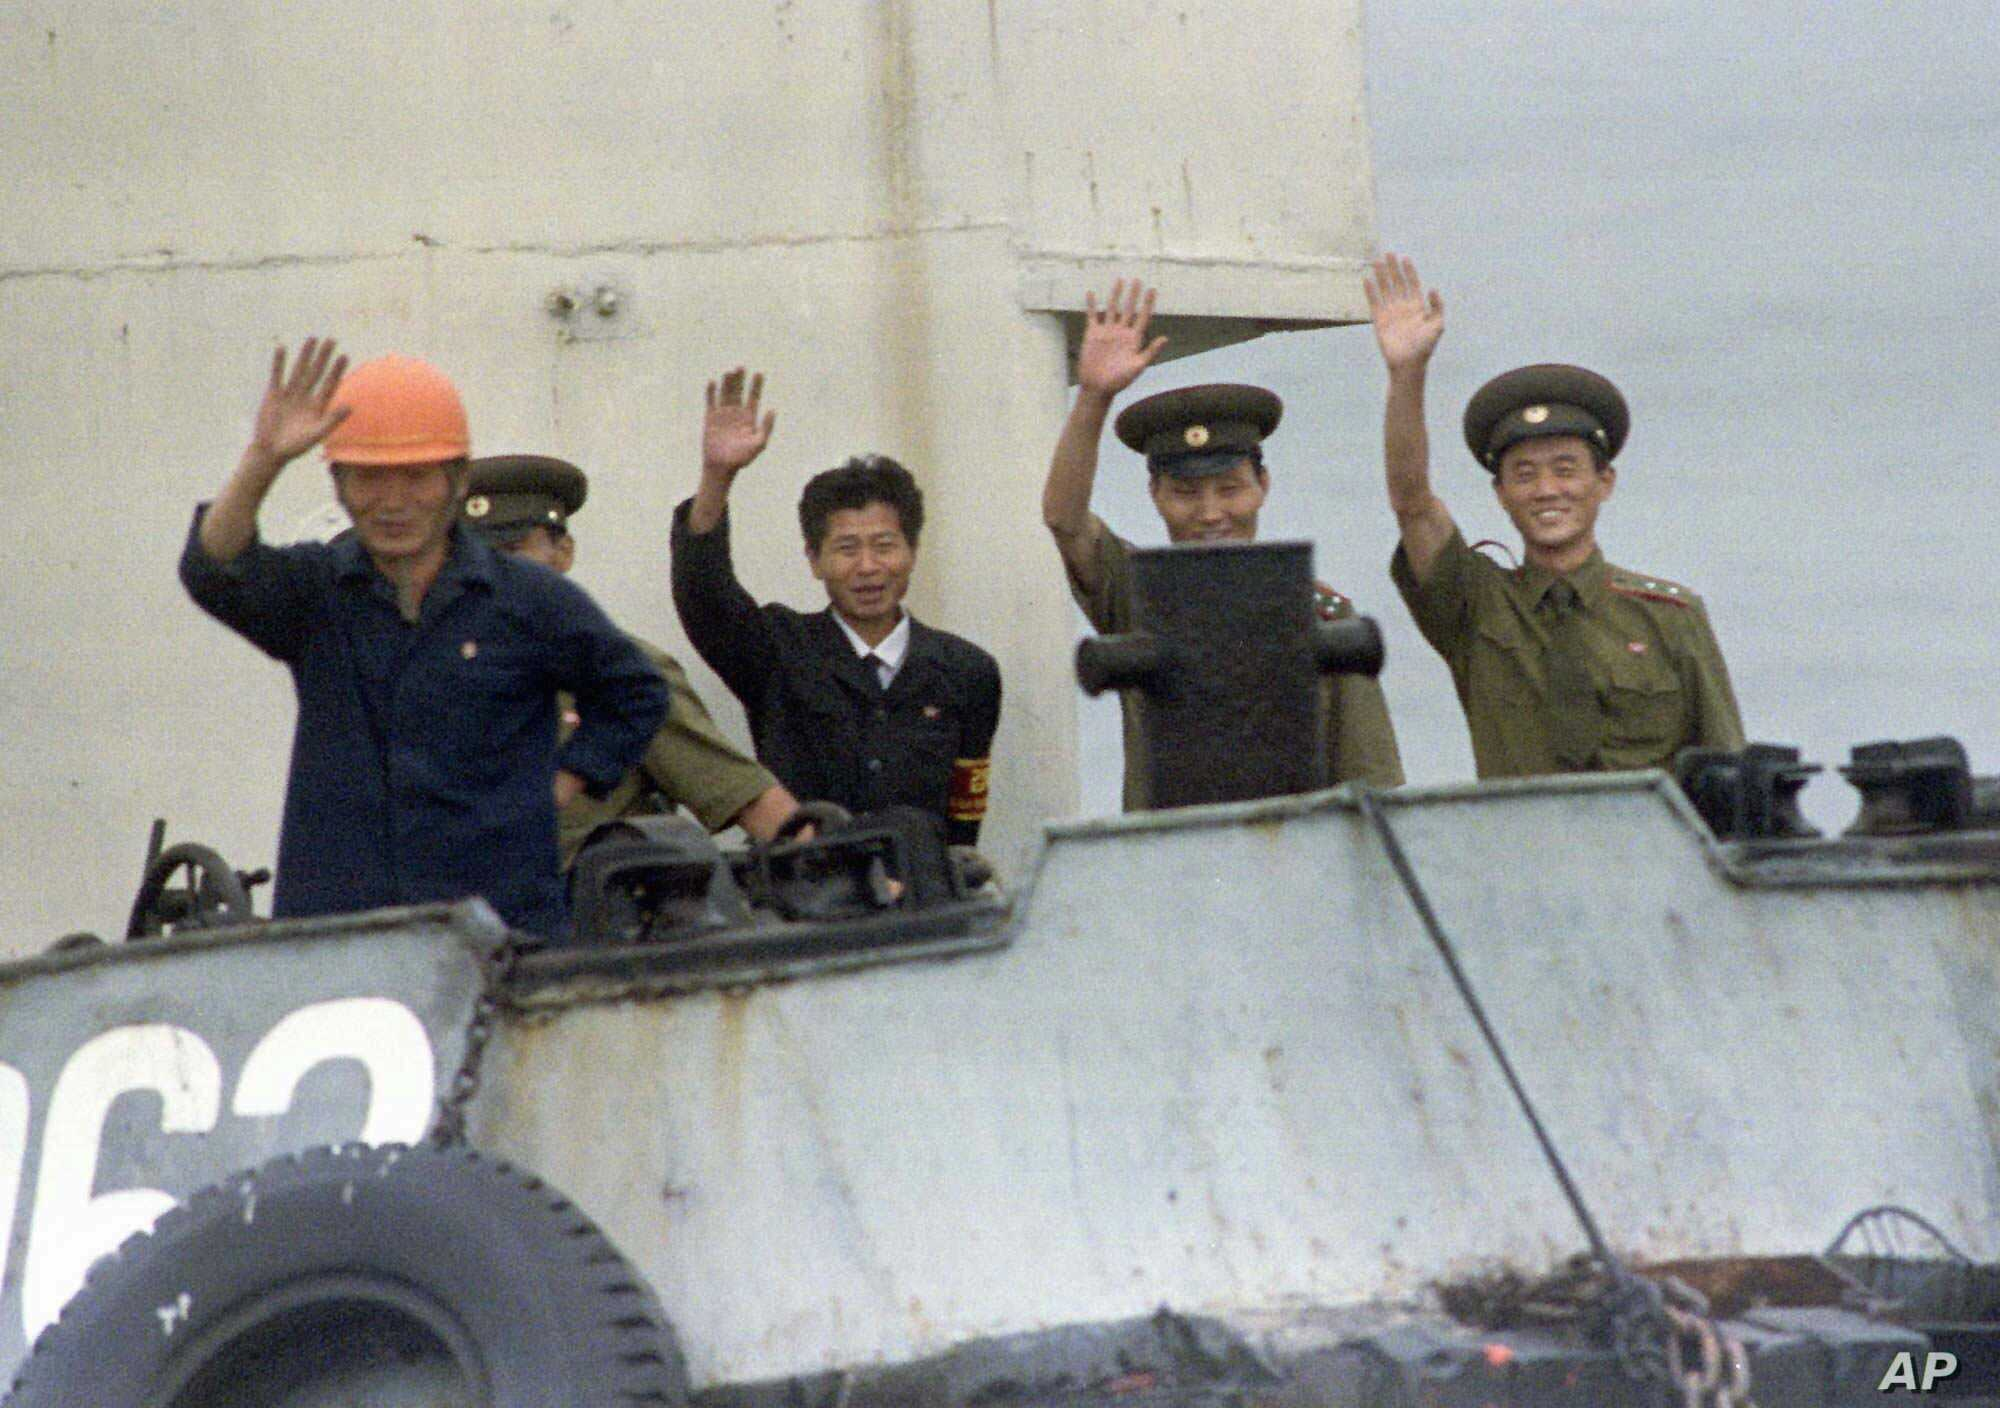 FILE - North Korean port officials wave from their launch as it approaches a South Korean ship near Yanghwa, North Korea, Aug. 19, 1997. Outsiders had been permitted to enter North Korea to attend a groundbreaking for construction of two light water ...